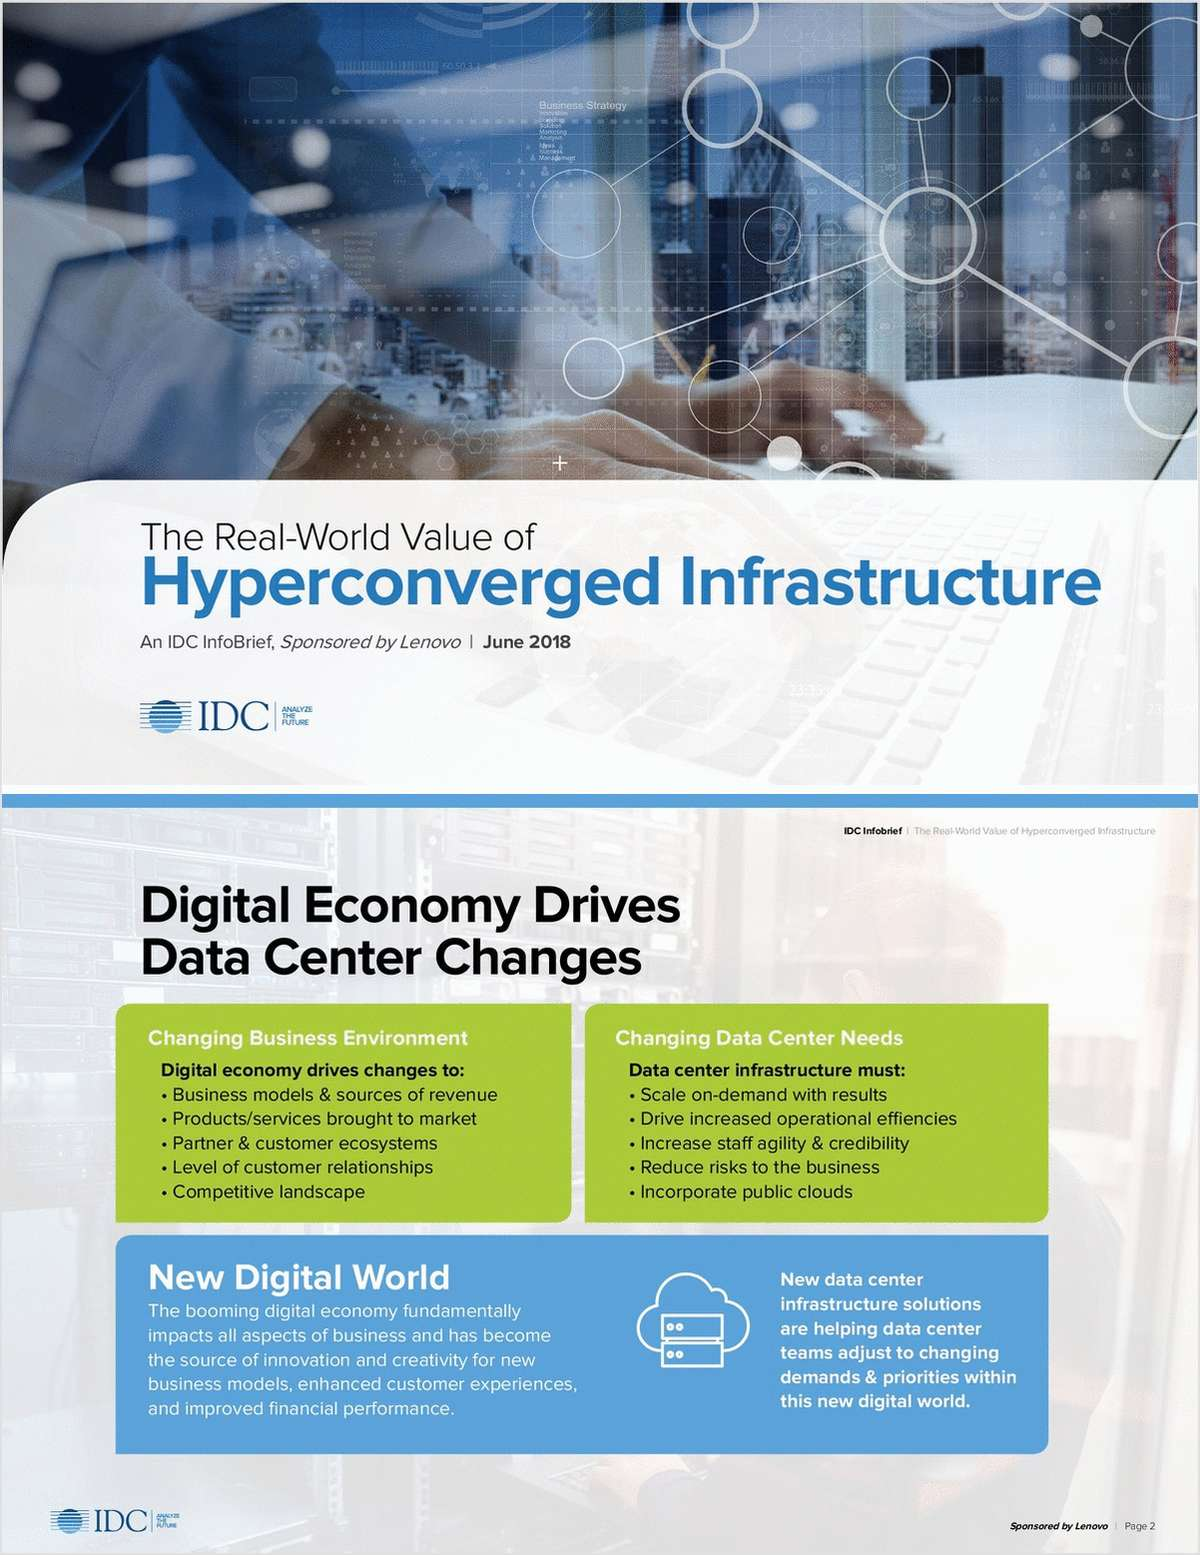 The Real-World Value of Hyperconverged Infrastructure